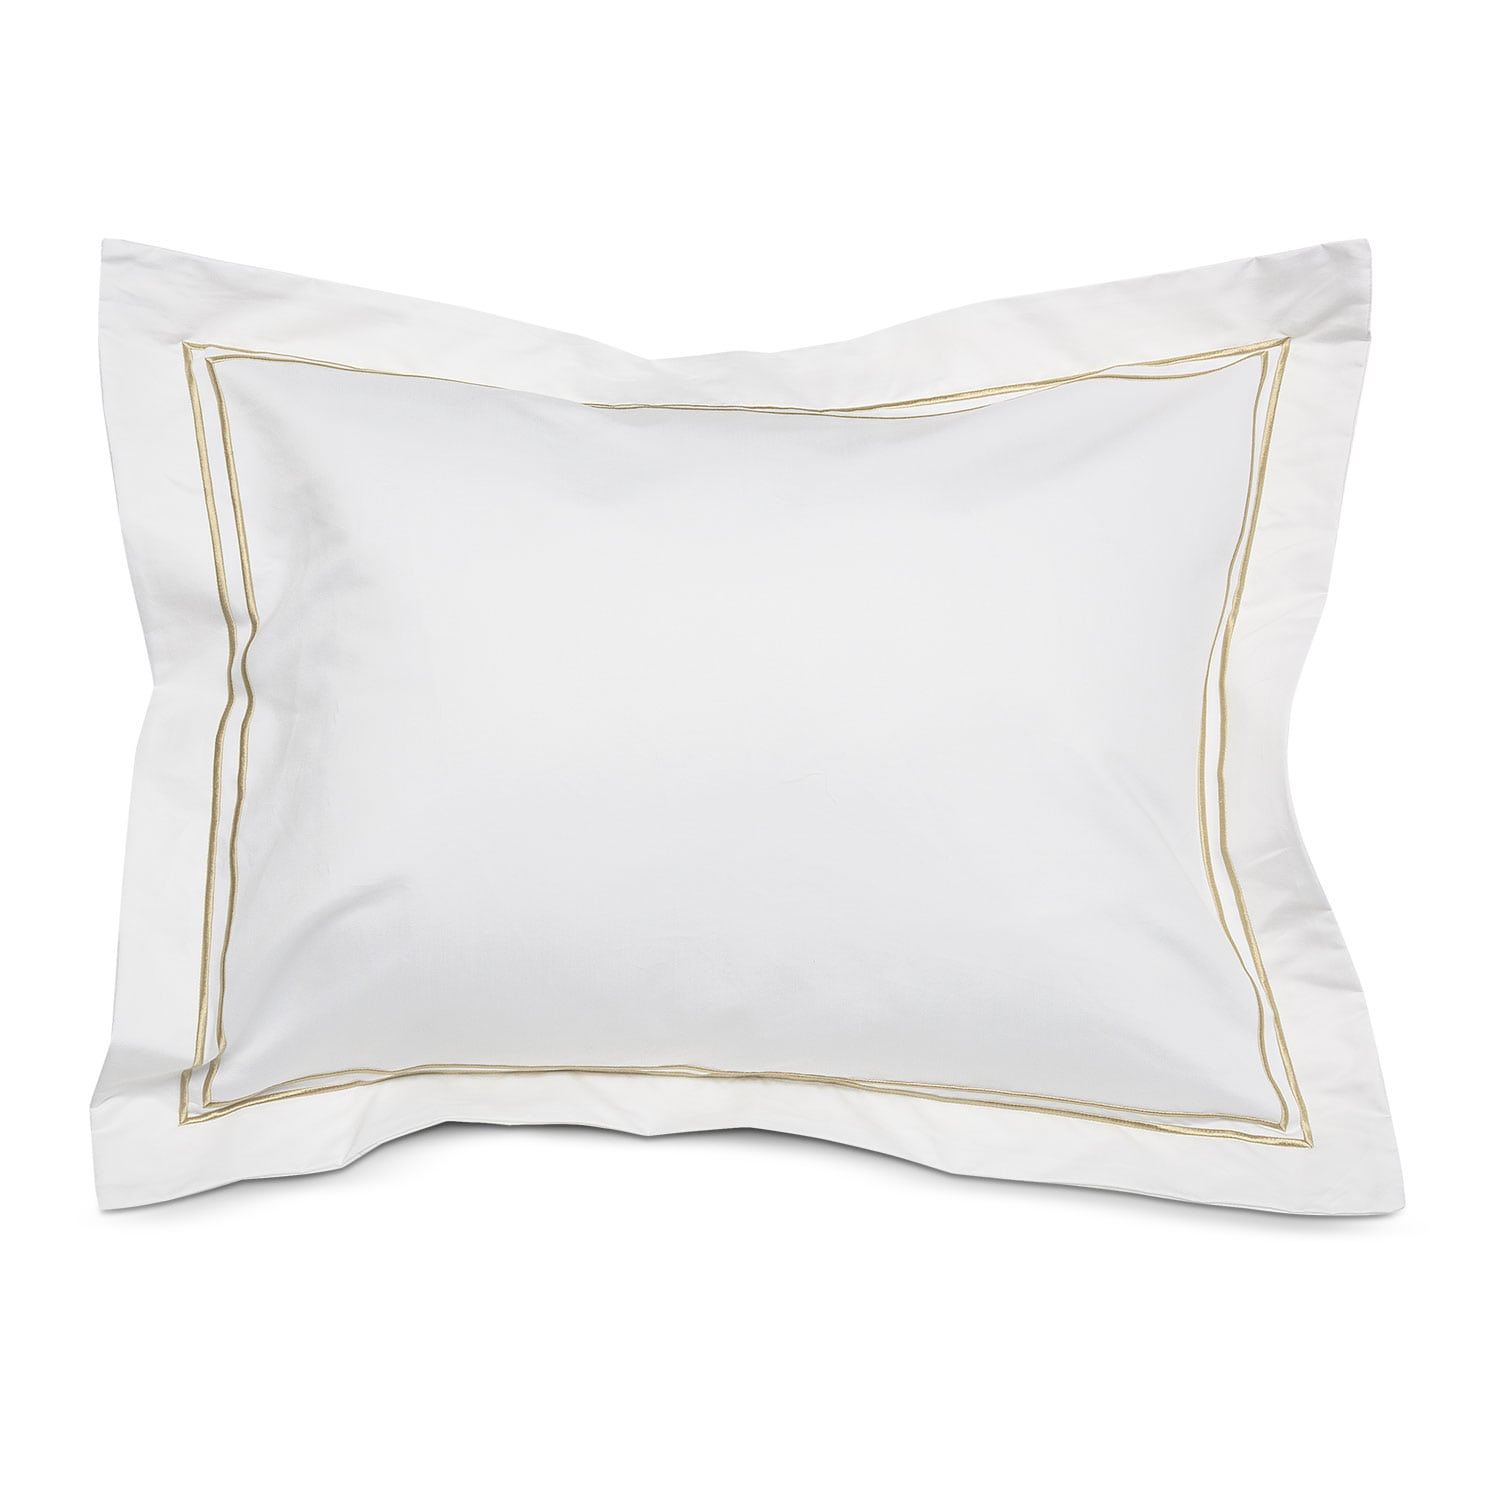 [Hampton Embroidered Euro Sham Set of Two - White and Beige]